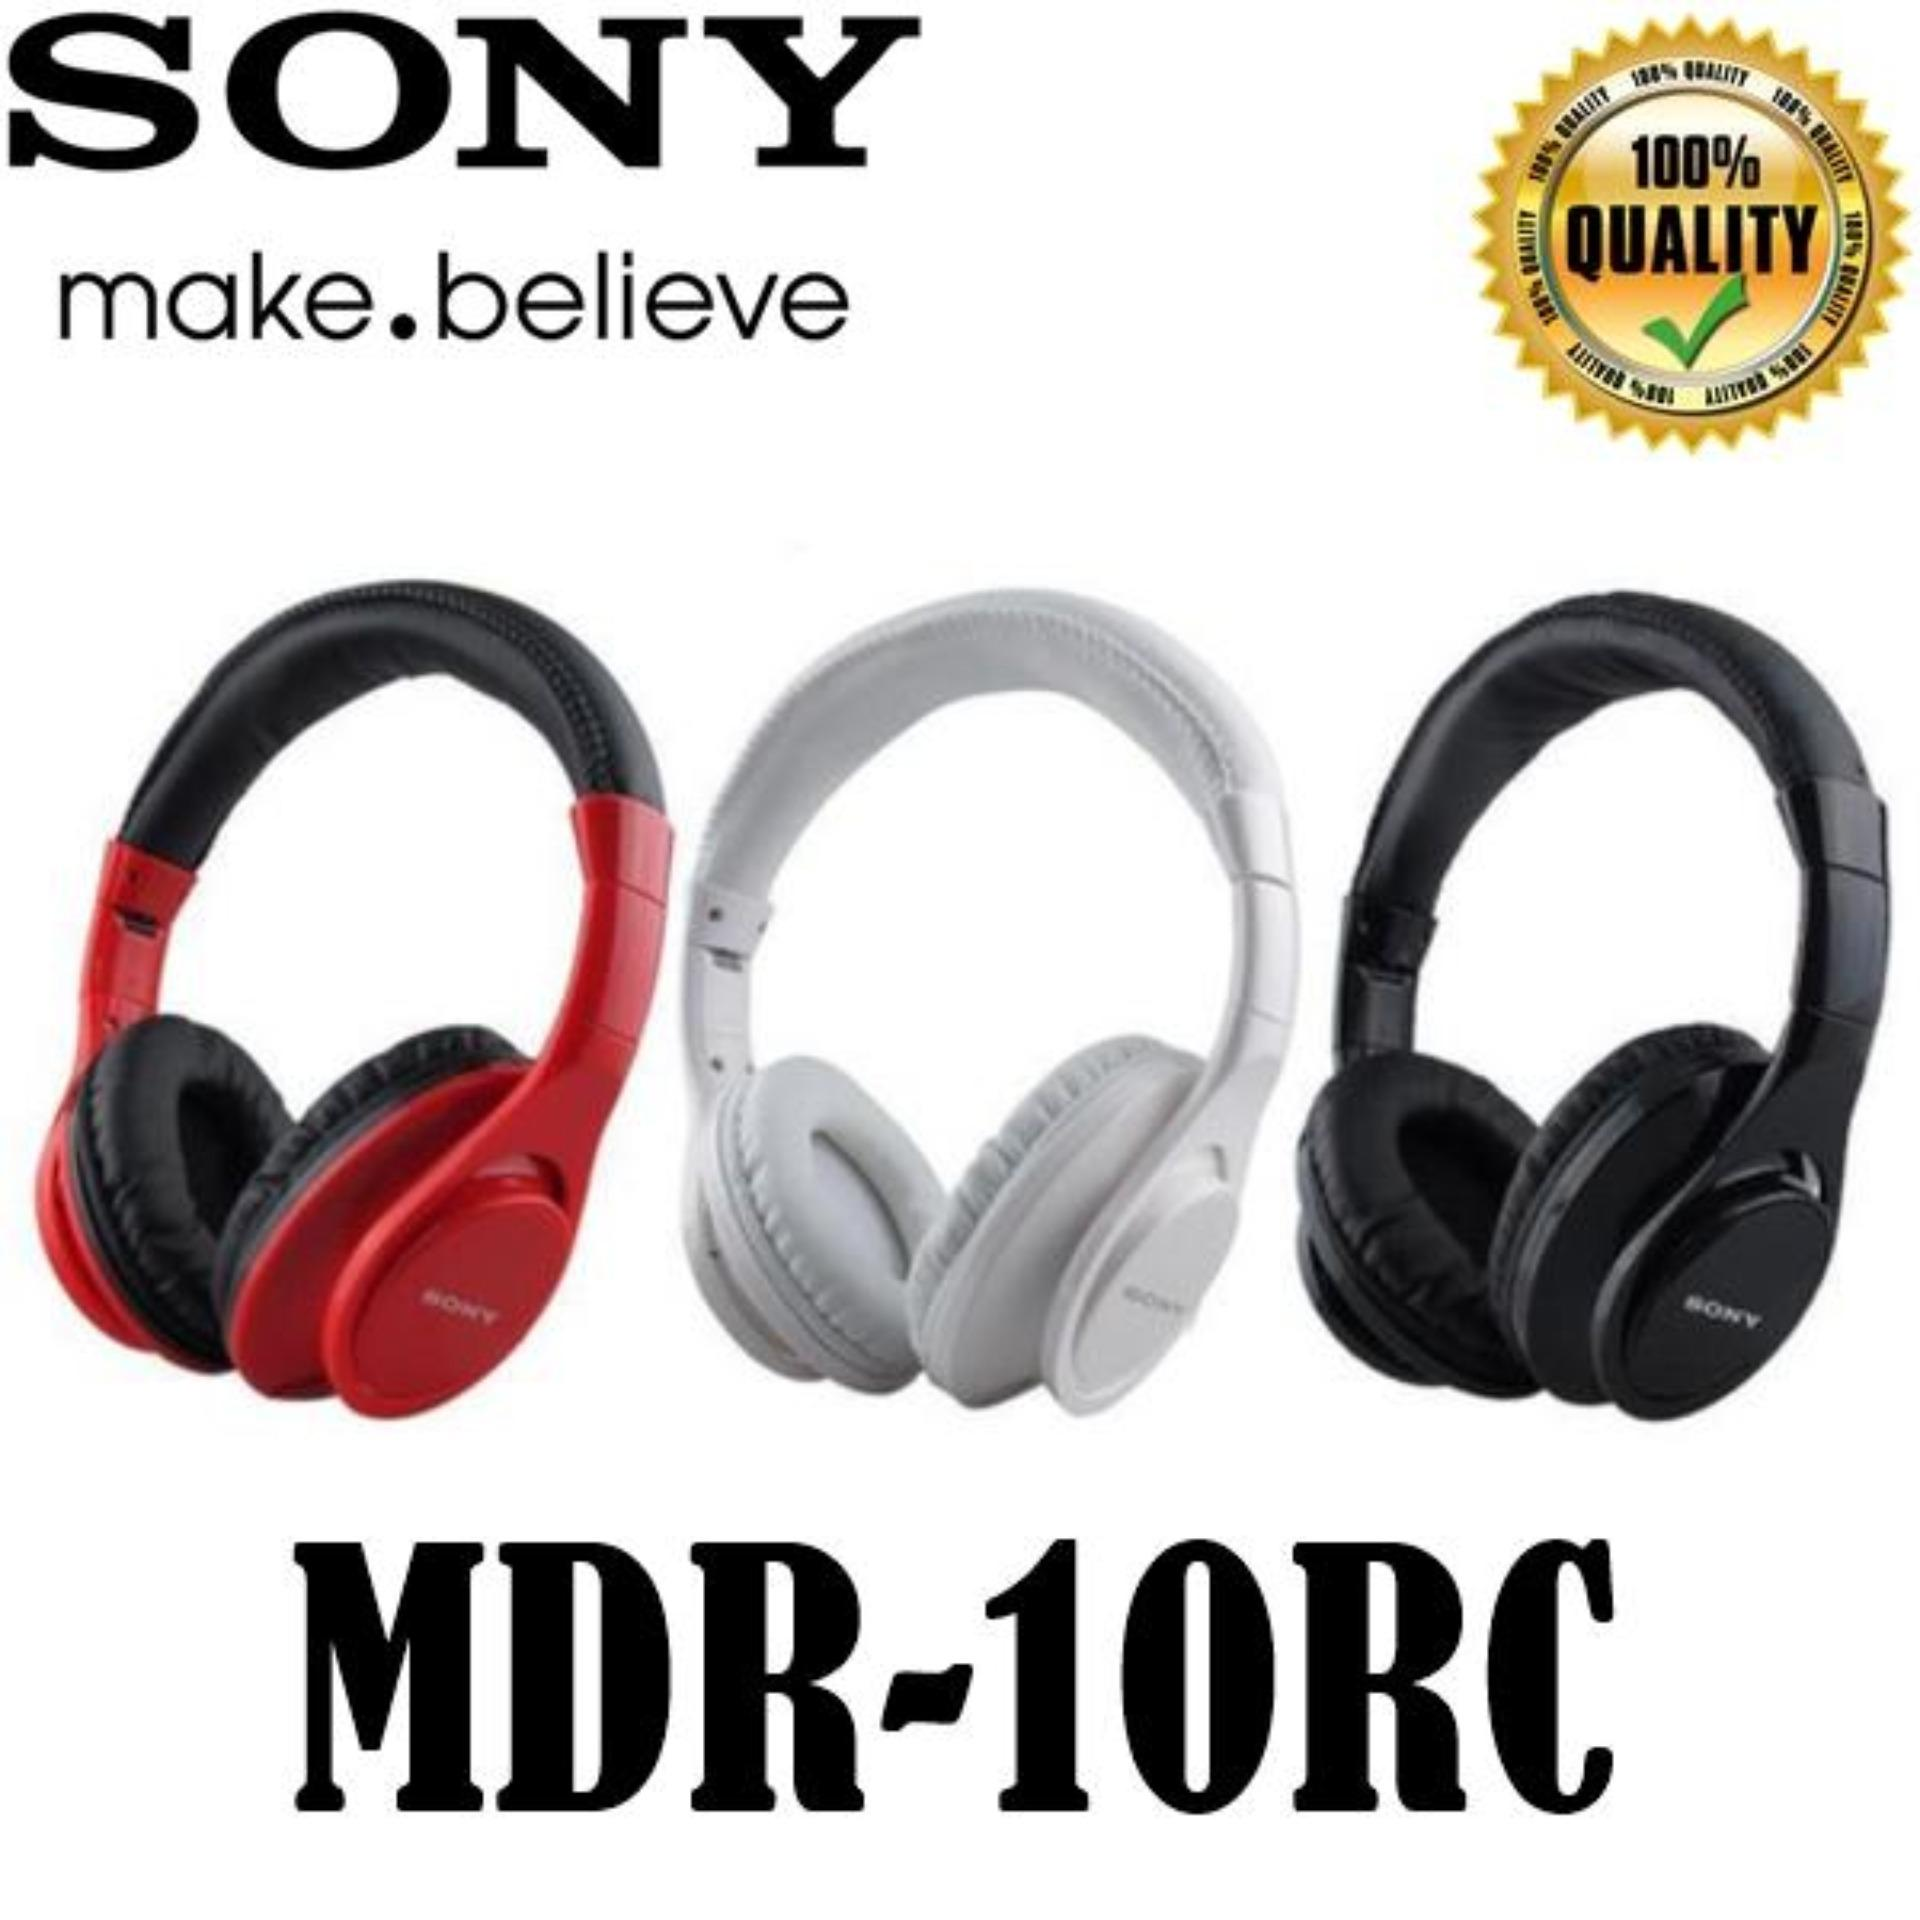 Headphone Sony Serial Mdr 10rc Putih Daftar Harga Terbaru Dan Xb50bsrze Red Stereo Headphones Casque Decoute High Quality